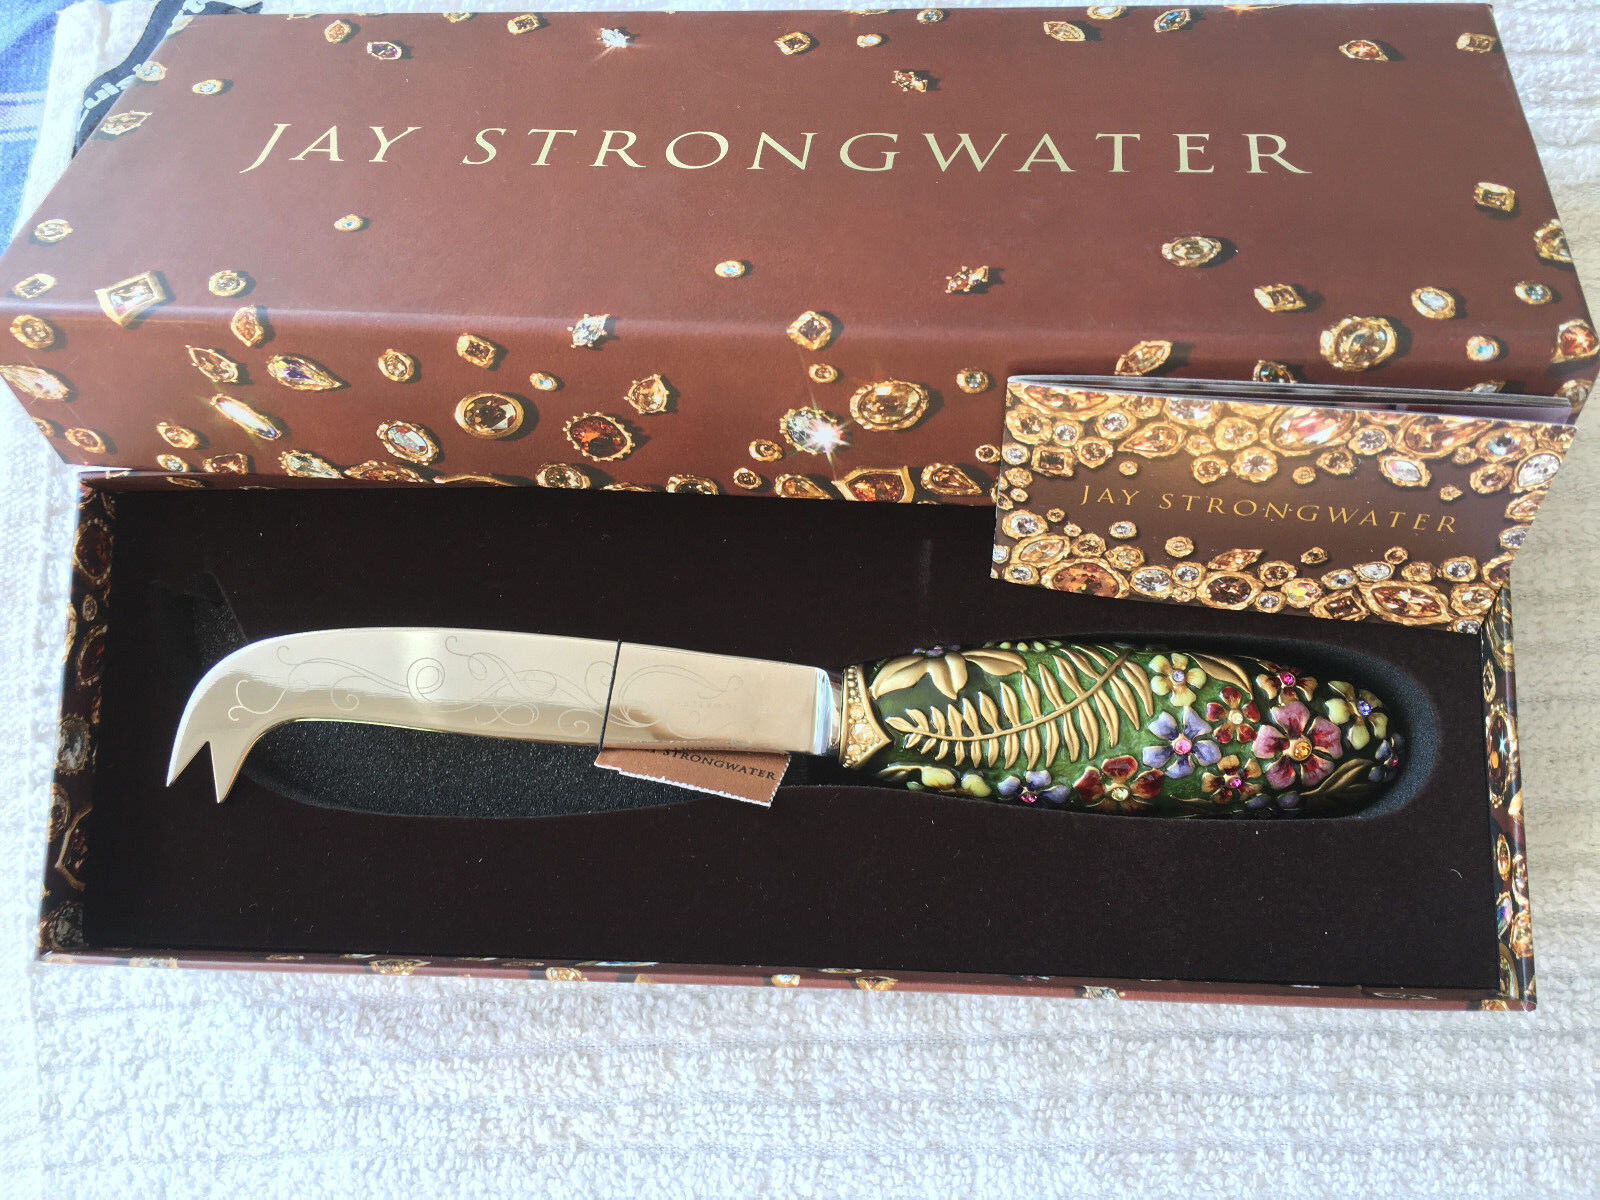 New in Box Jay Strongwater fromage Couteau Multi-couleur cristaux swarovski rare